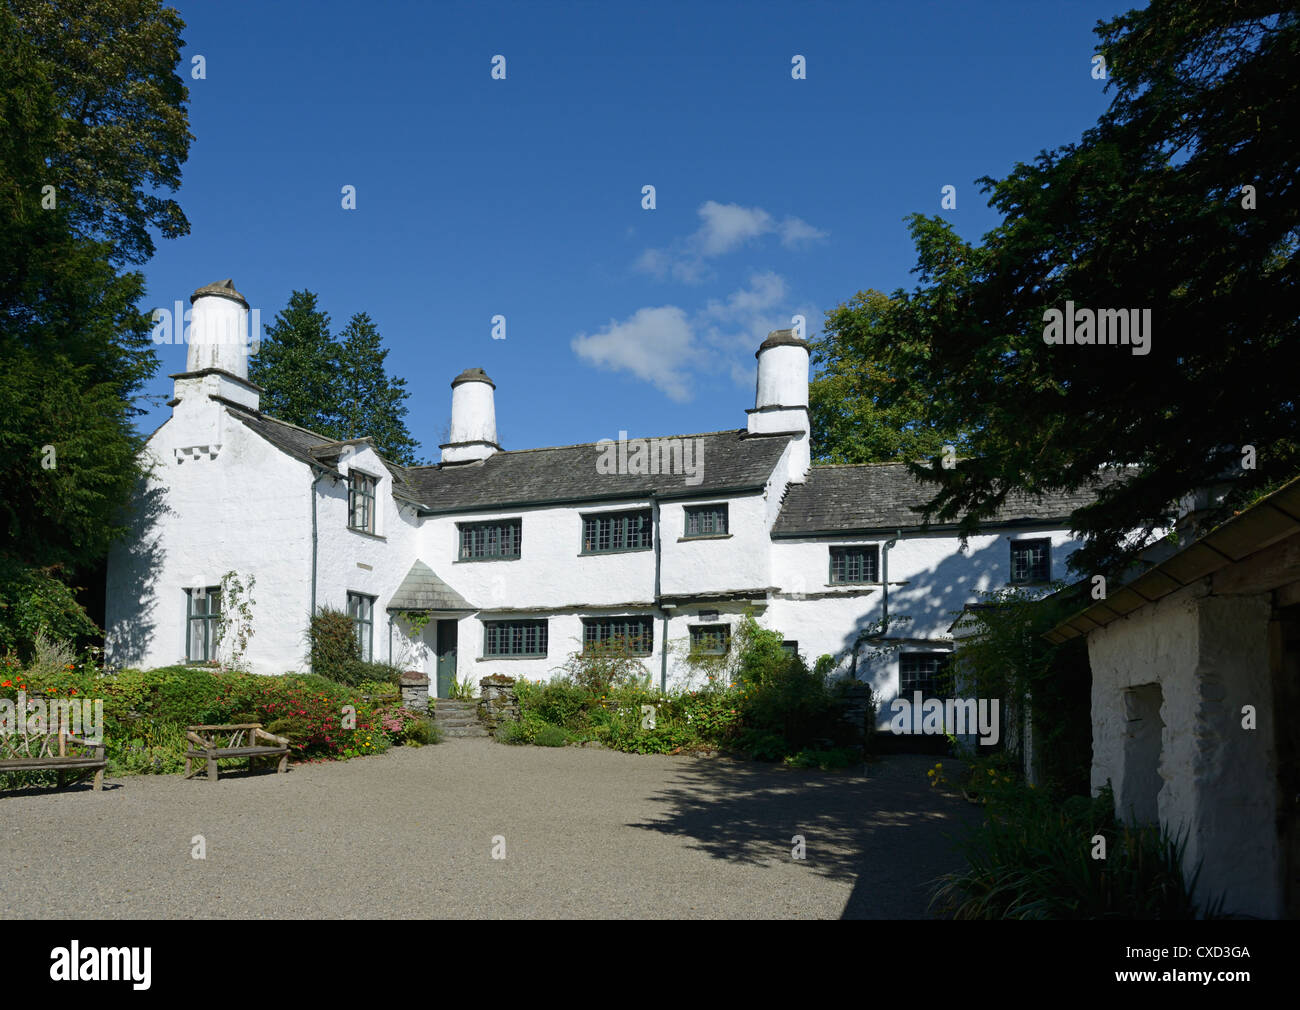 Townend, Troutbeck, Lake District National Park, Cumbria, England, United Kingdom, Europe. - Stock Image